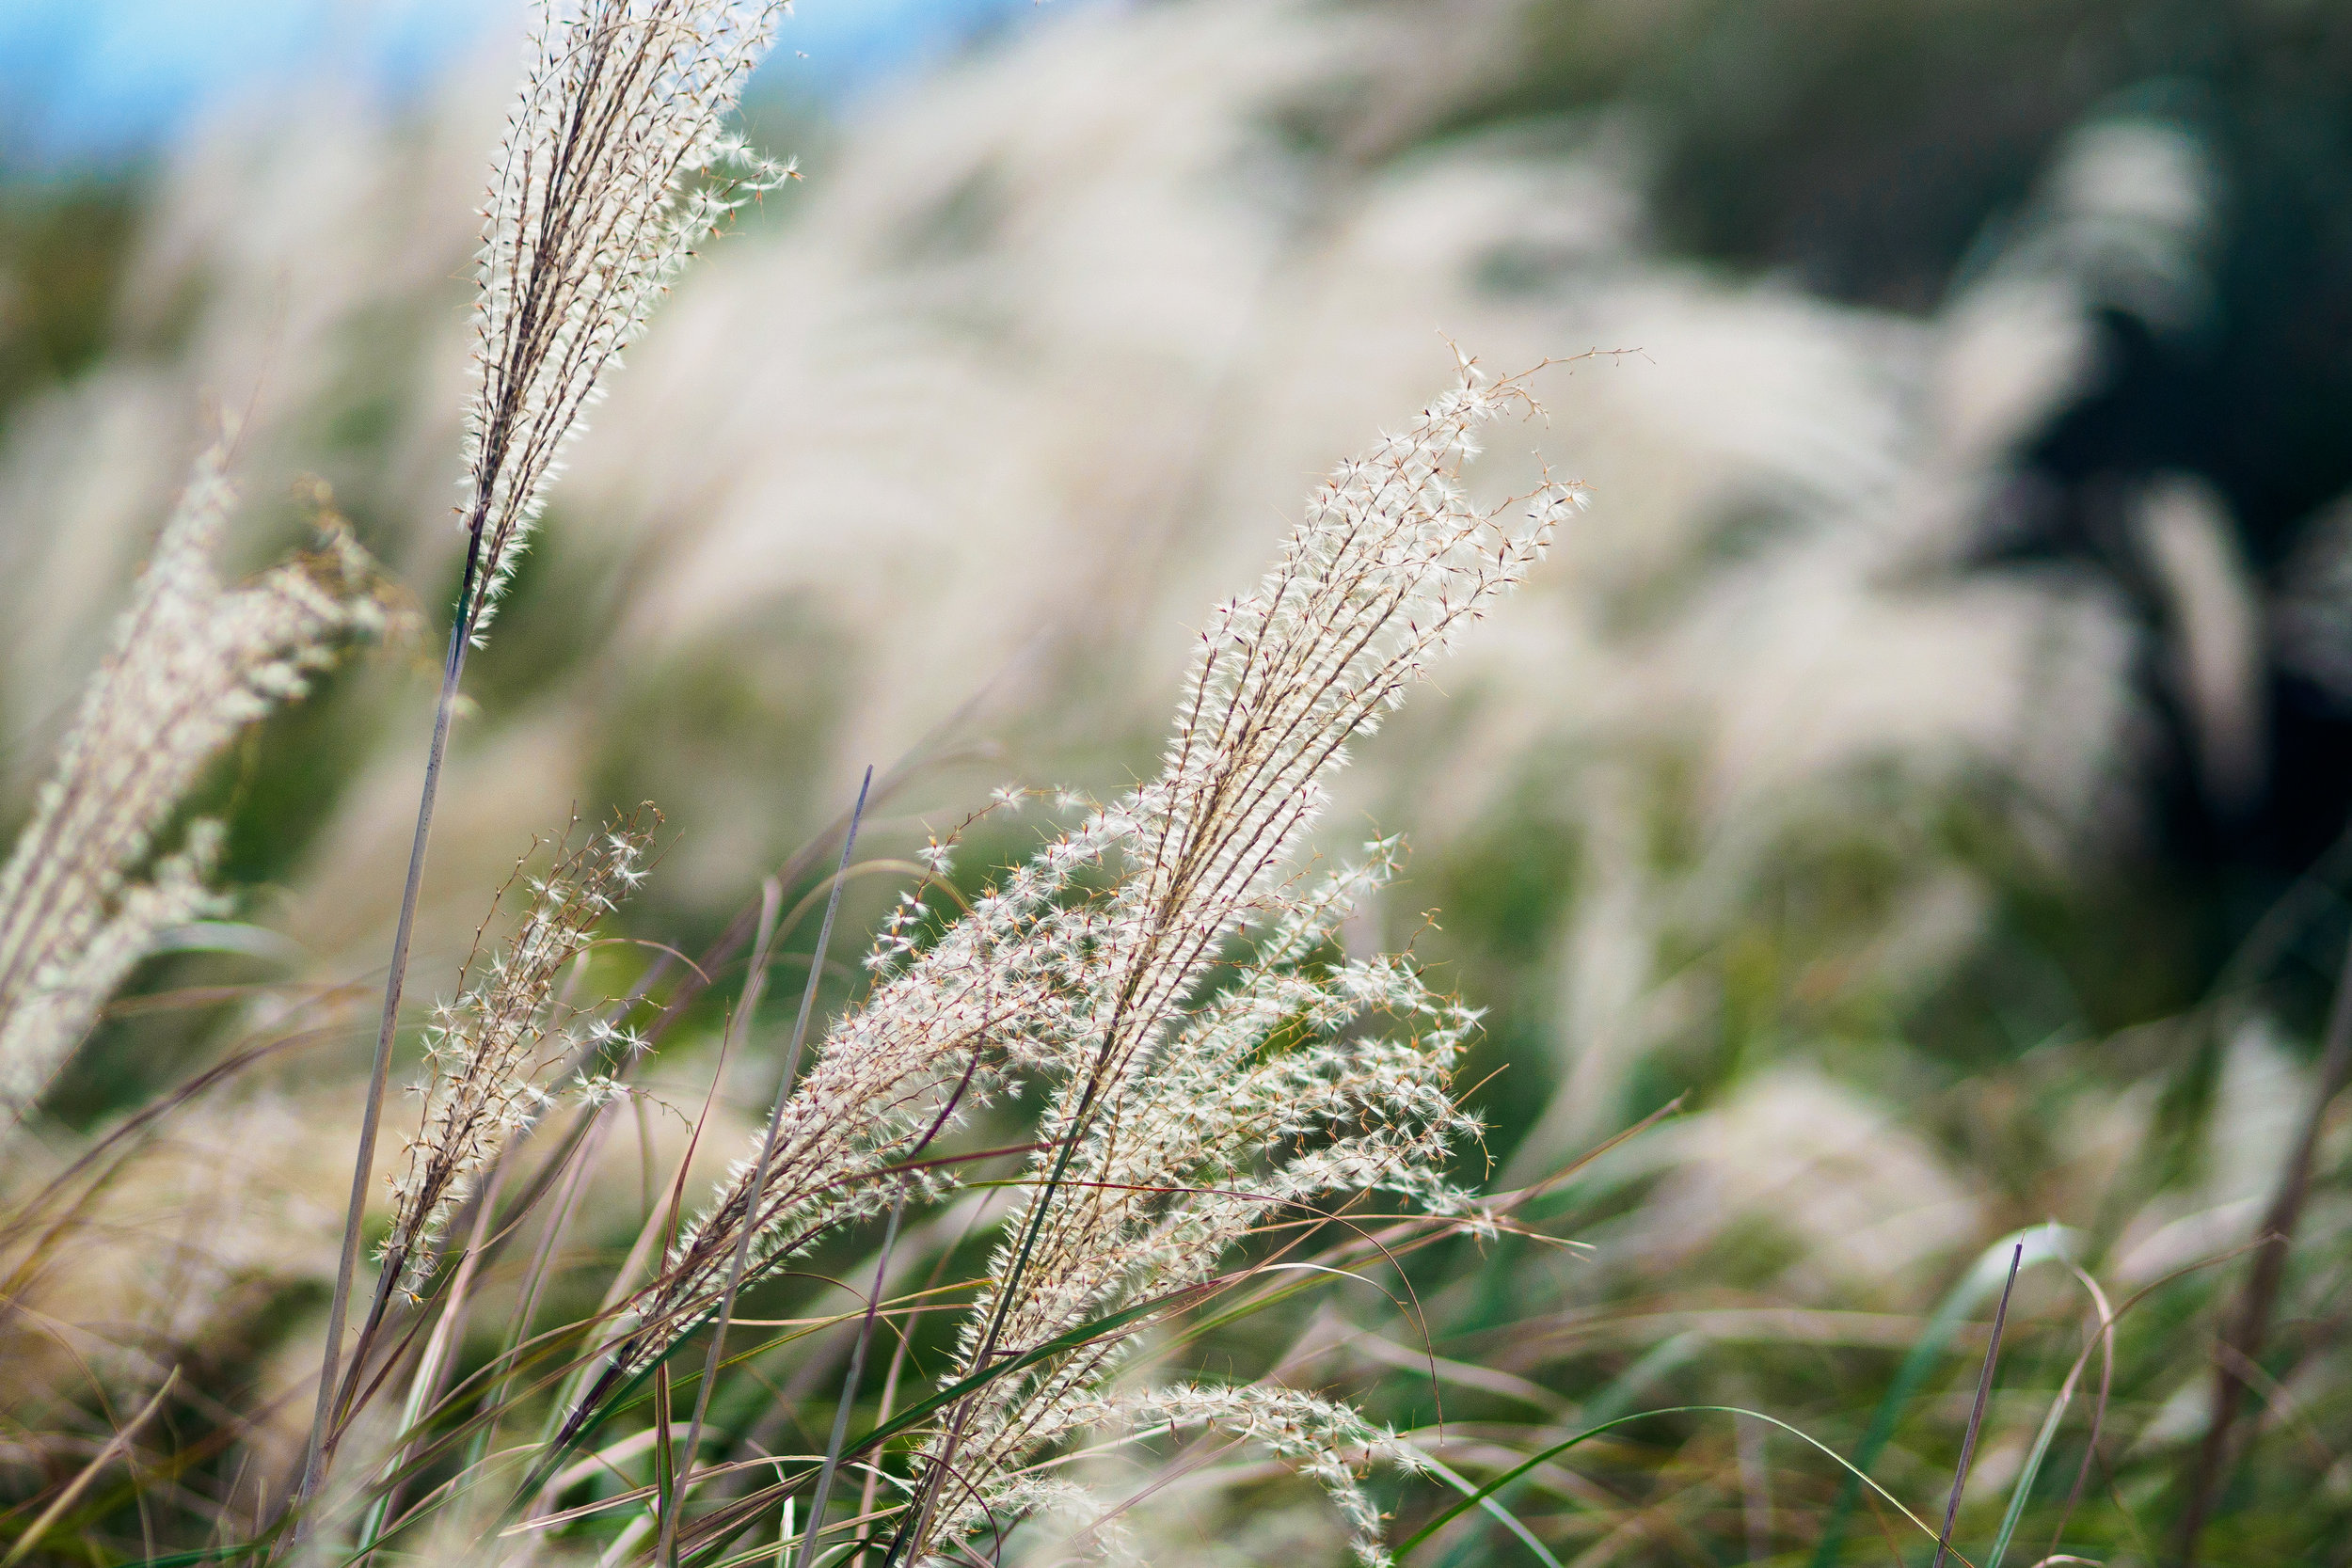 the long grass. f1.8, ISO 200, 1/2000, 150mm